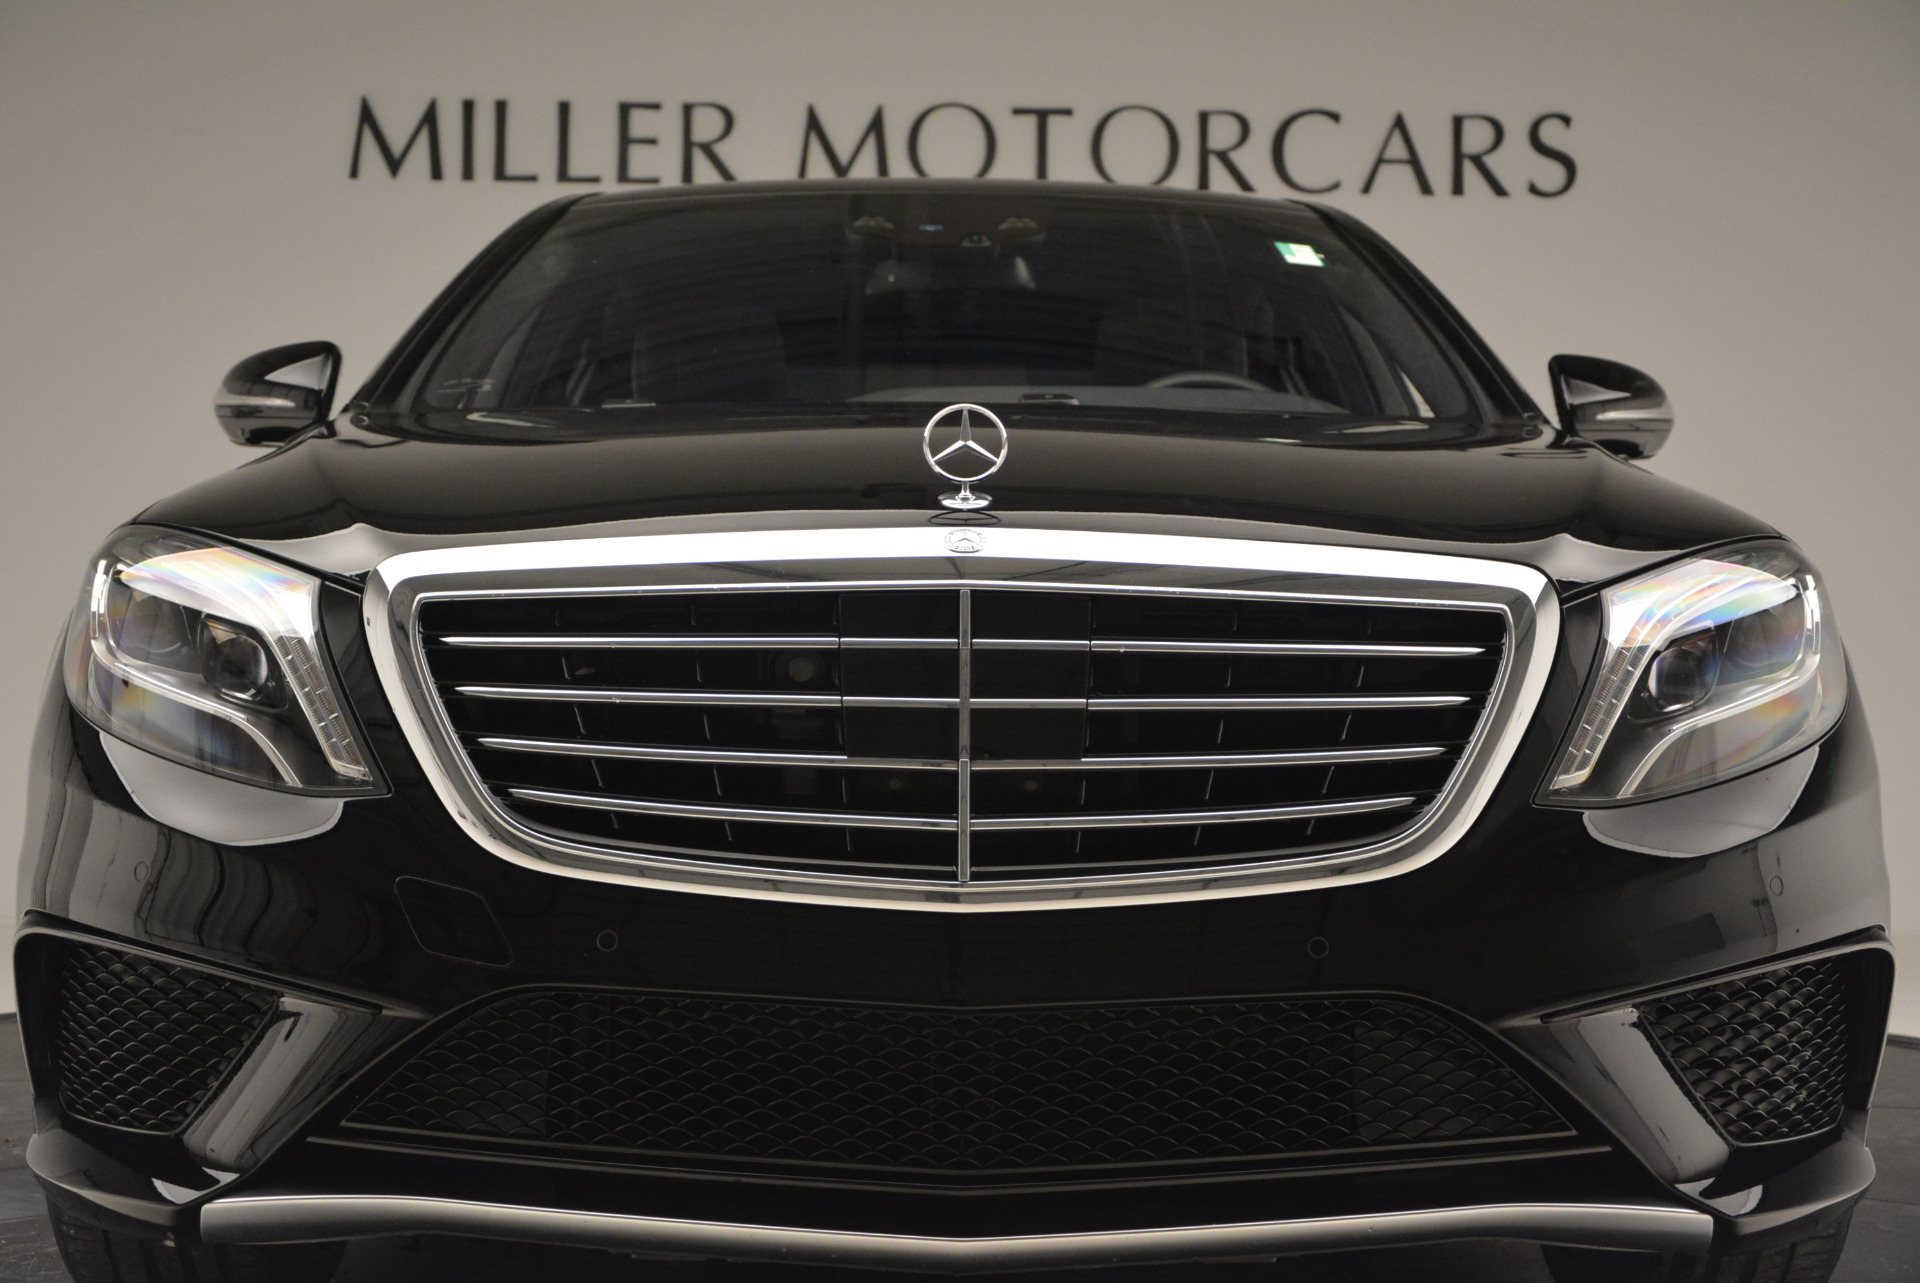 Used 2014 Mercedes Benz S-Class S 63 AMG For Sale In Greenwich, CT 912_p13